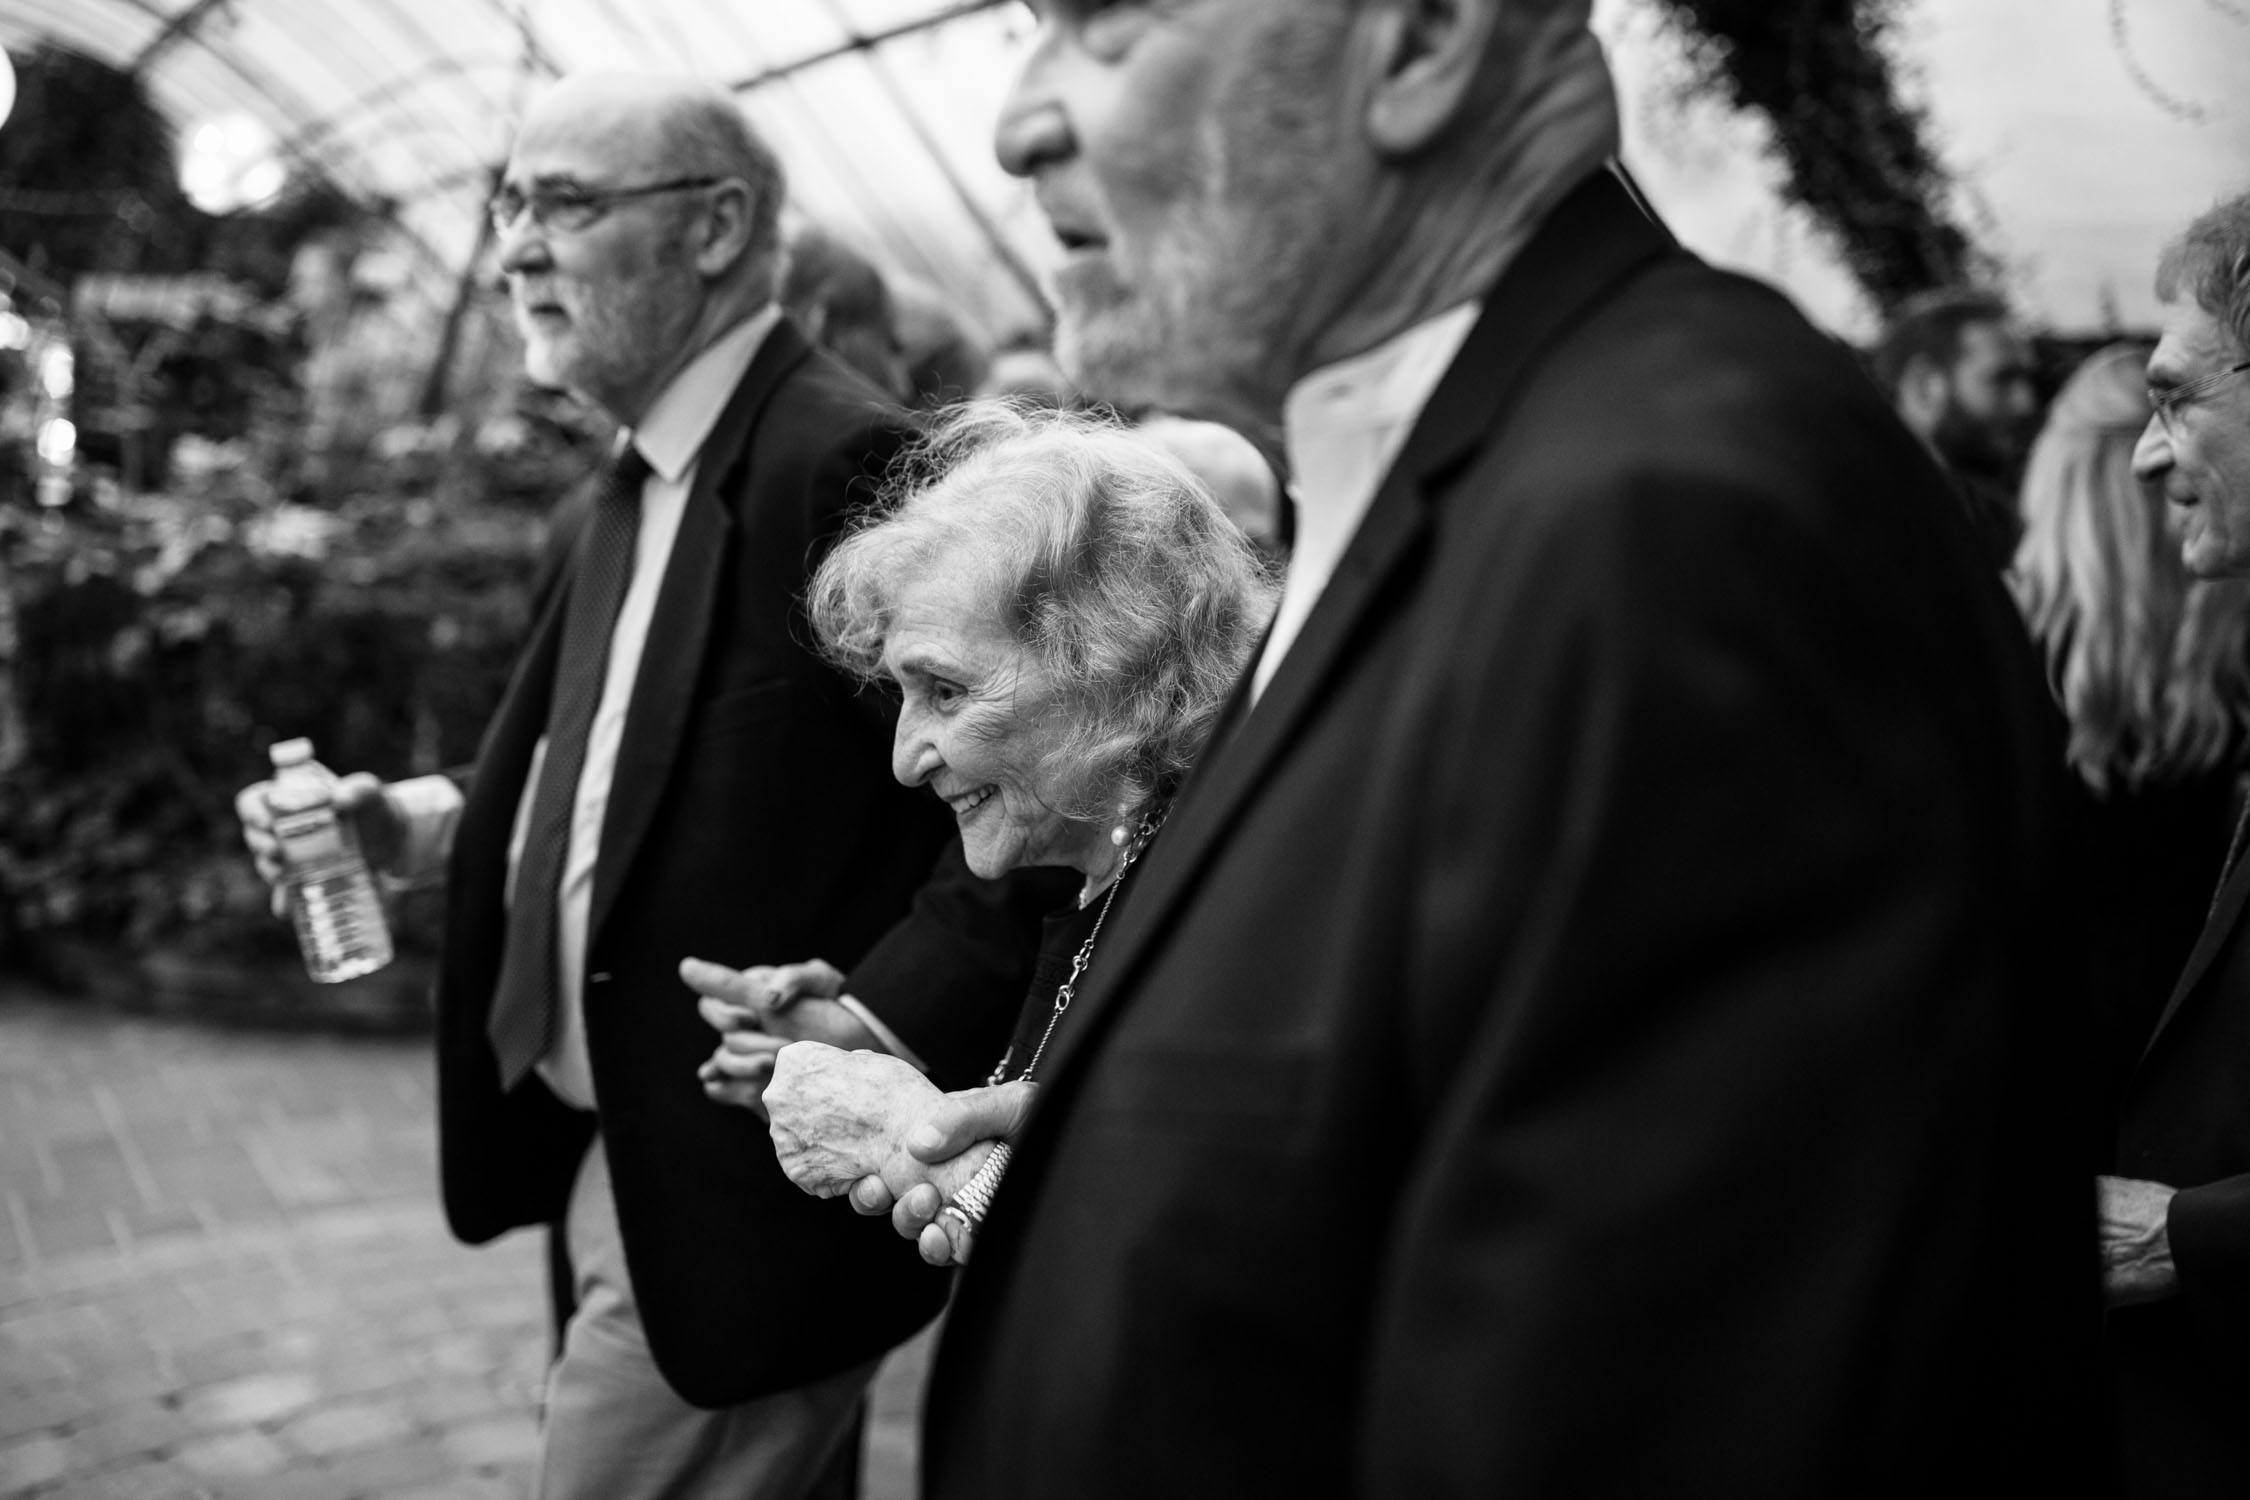 Candid documentary style wedding photographer based in Vancouver Canada